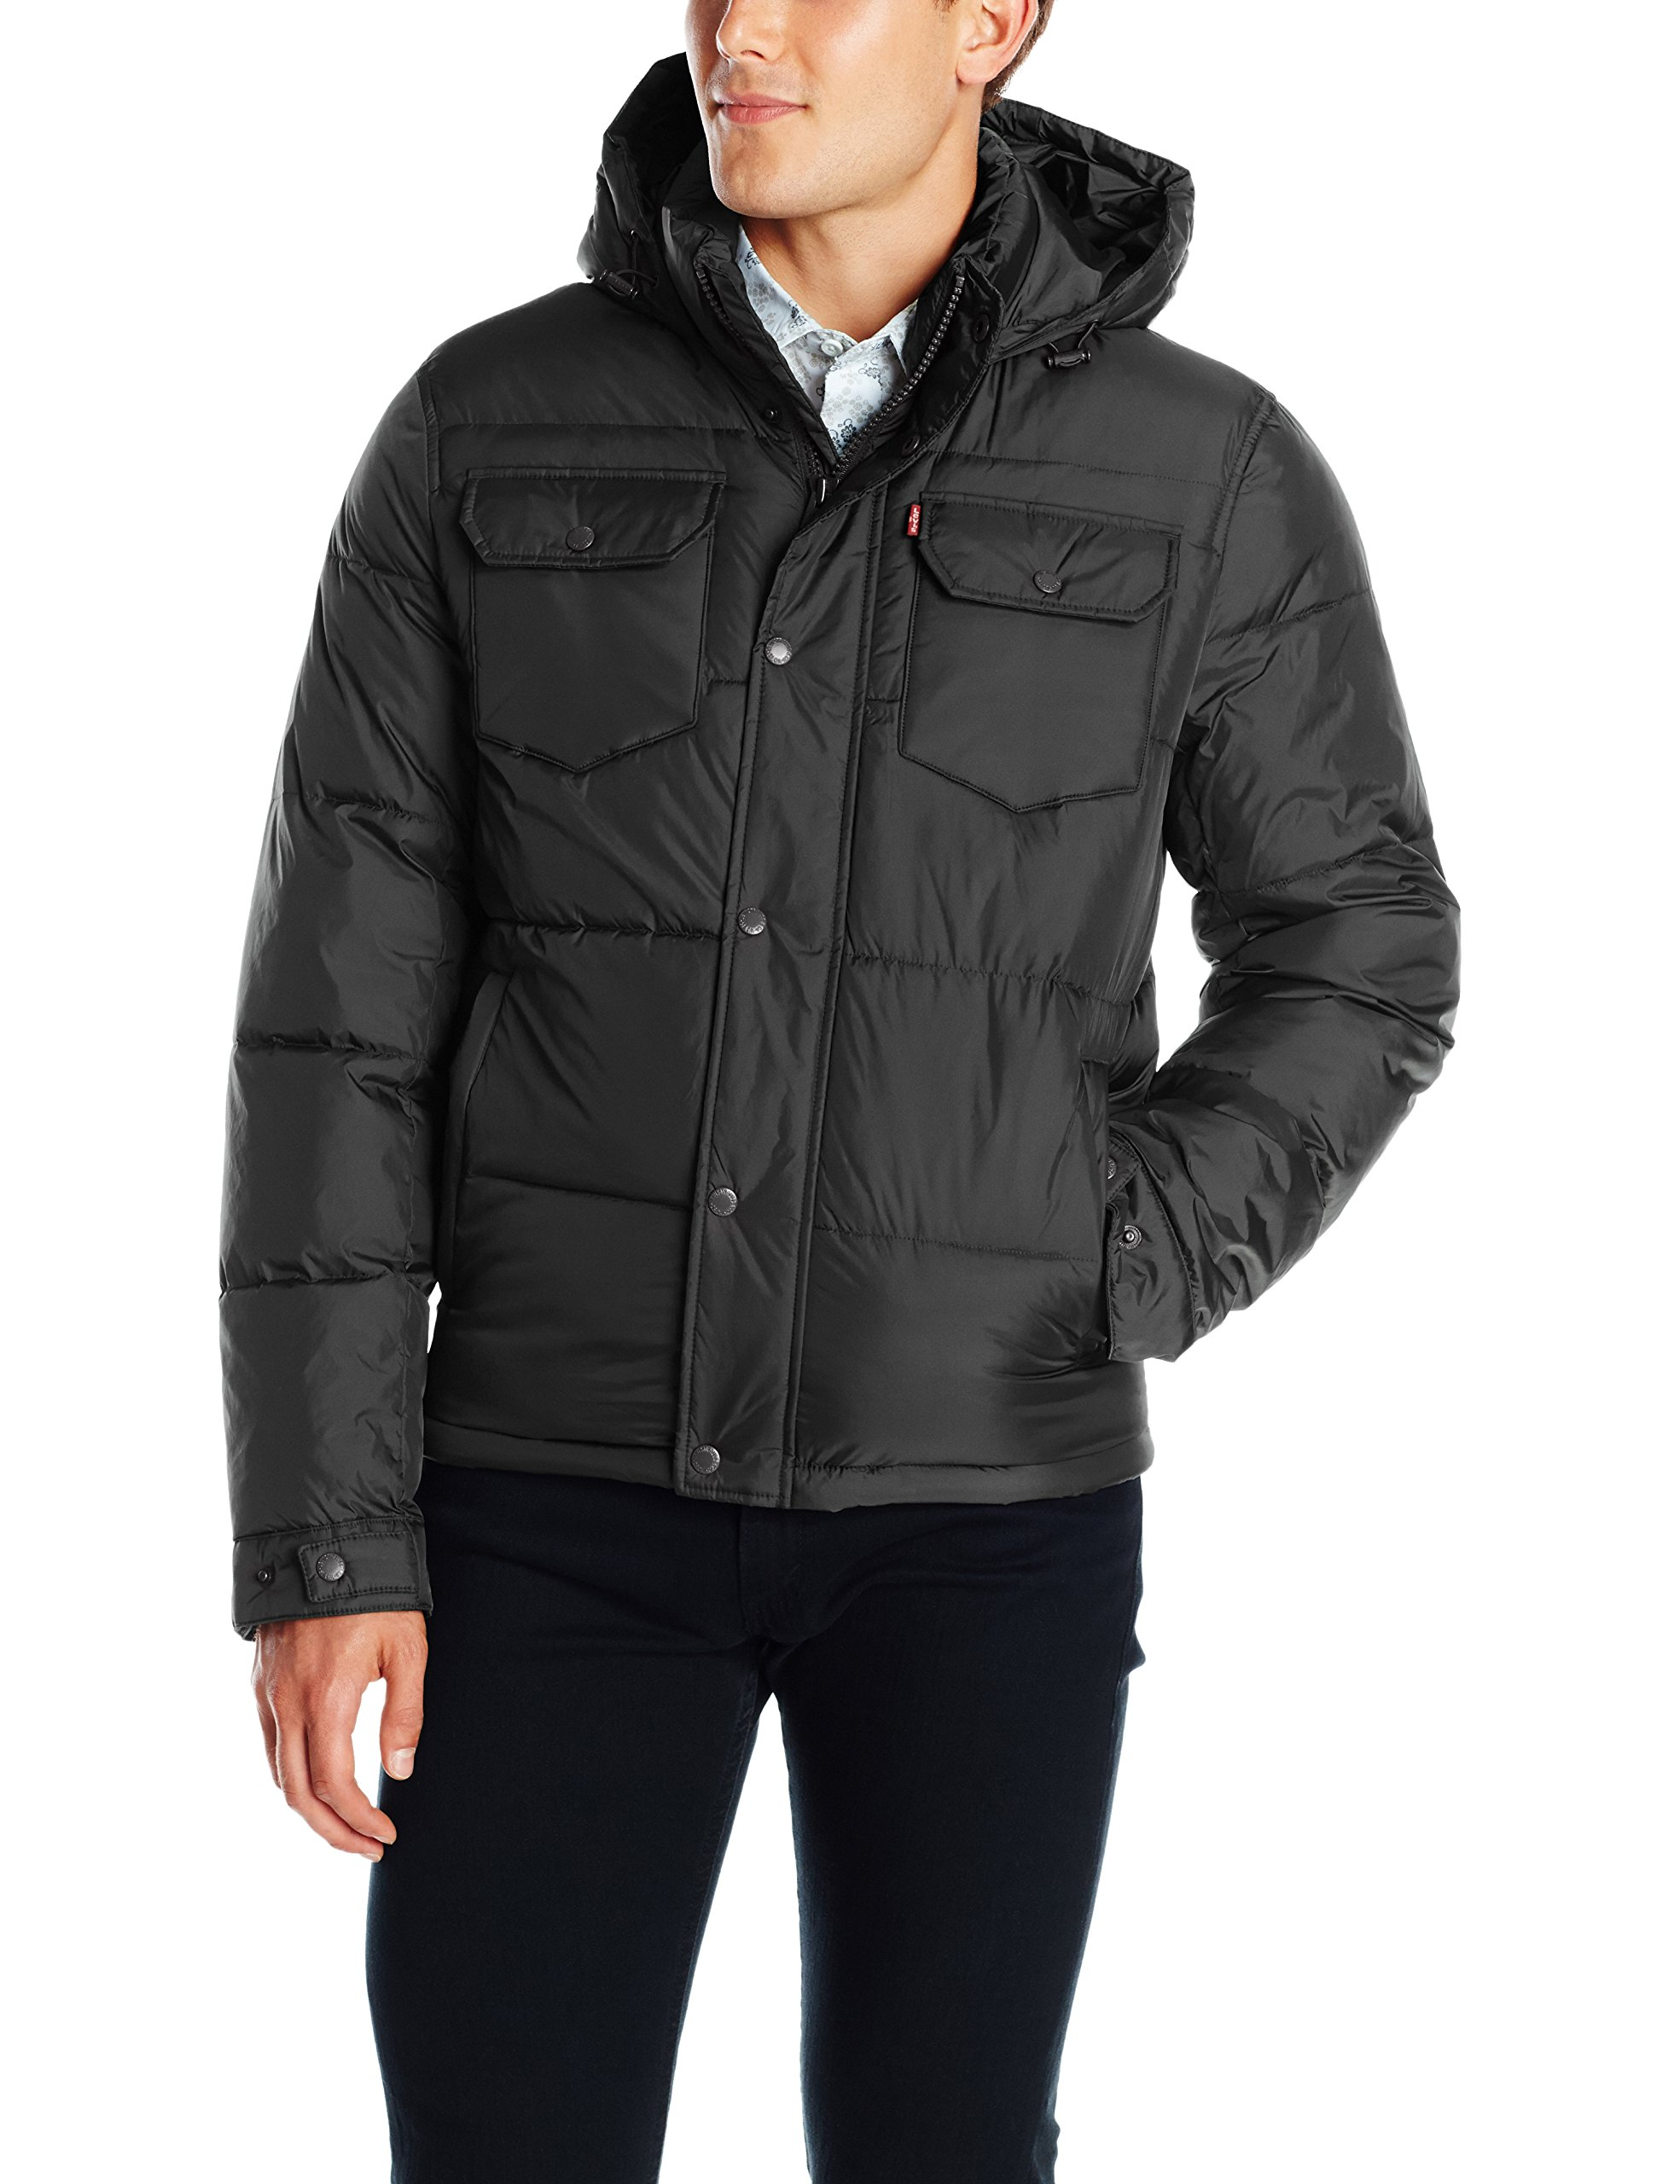 Levi's Men's Two Pocket Puffer Hooded Jacket, Black, Medium by Levi's